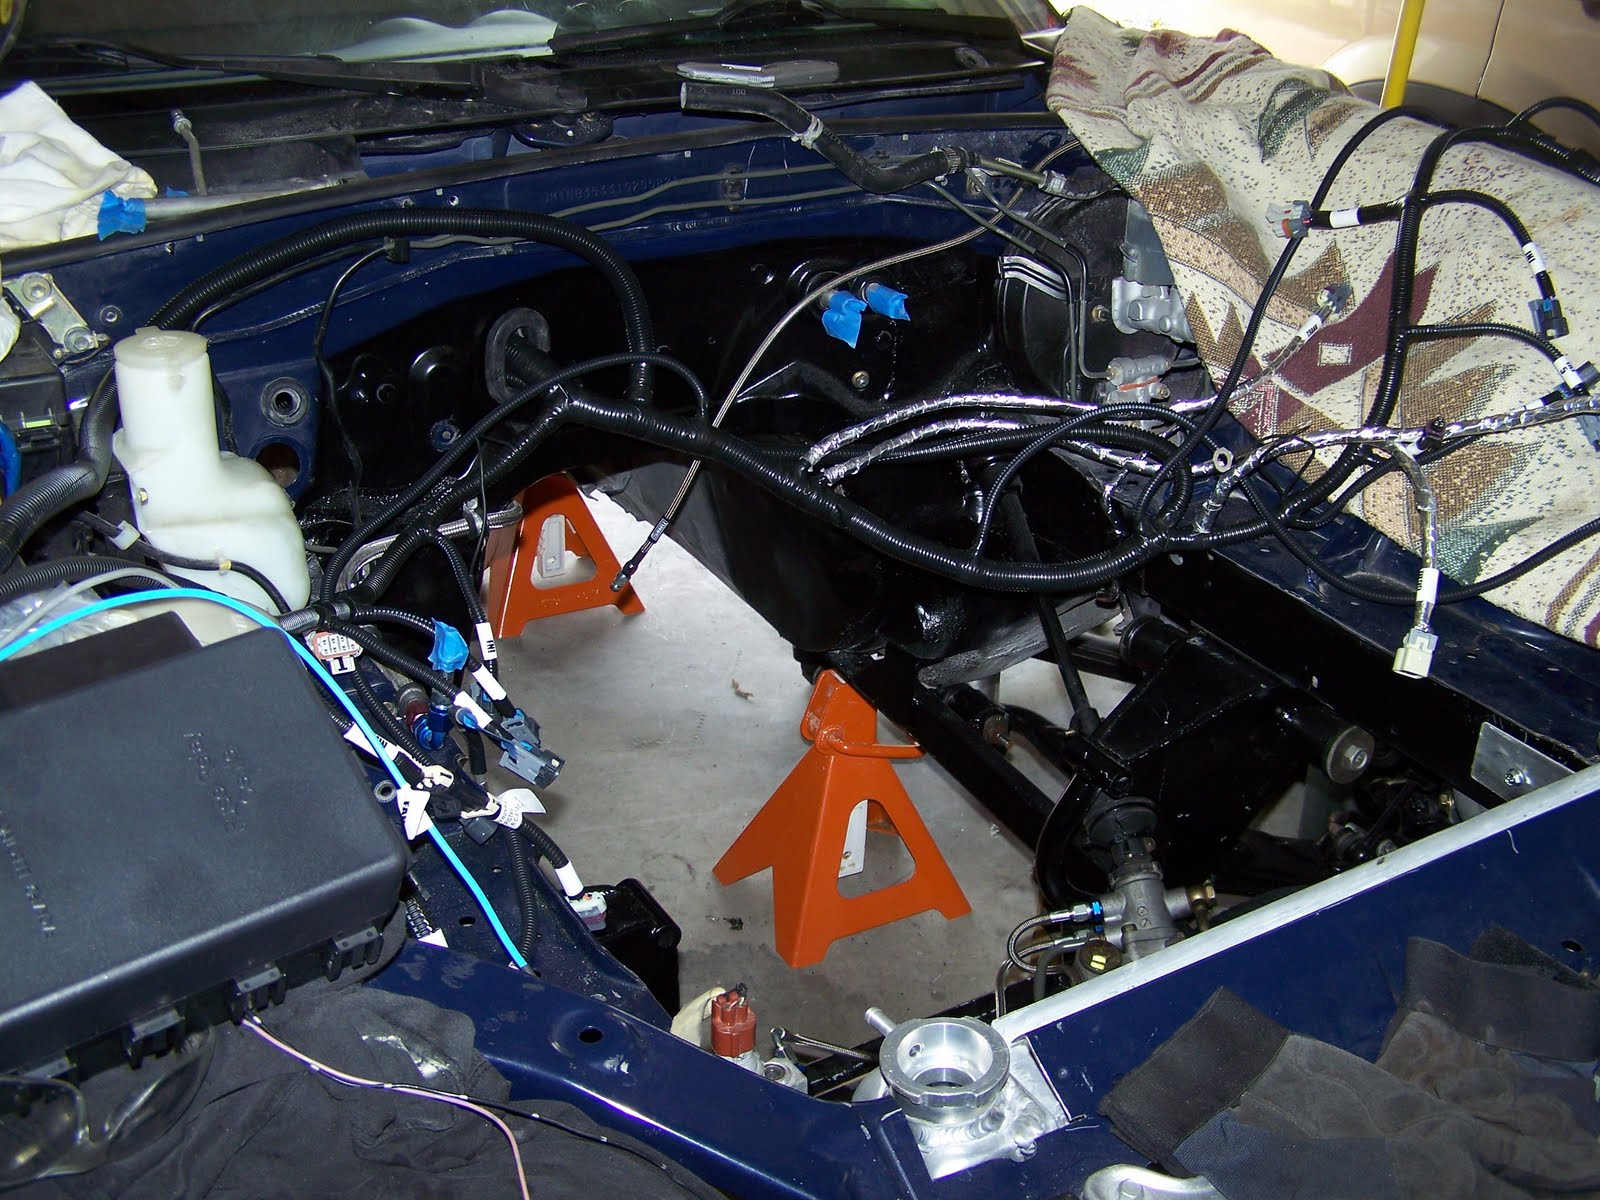 Brooksies Miata Build Ls Wiring Harness Through Tohe Firewall Scrap Wire One Problem Ive Been Laboring Over Is How To Get The Bulky Connectors So I Can Mount Computer Inside Passenger